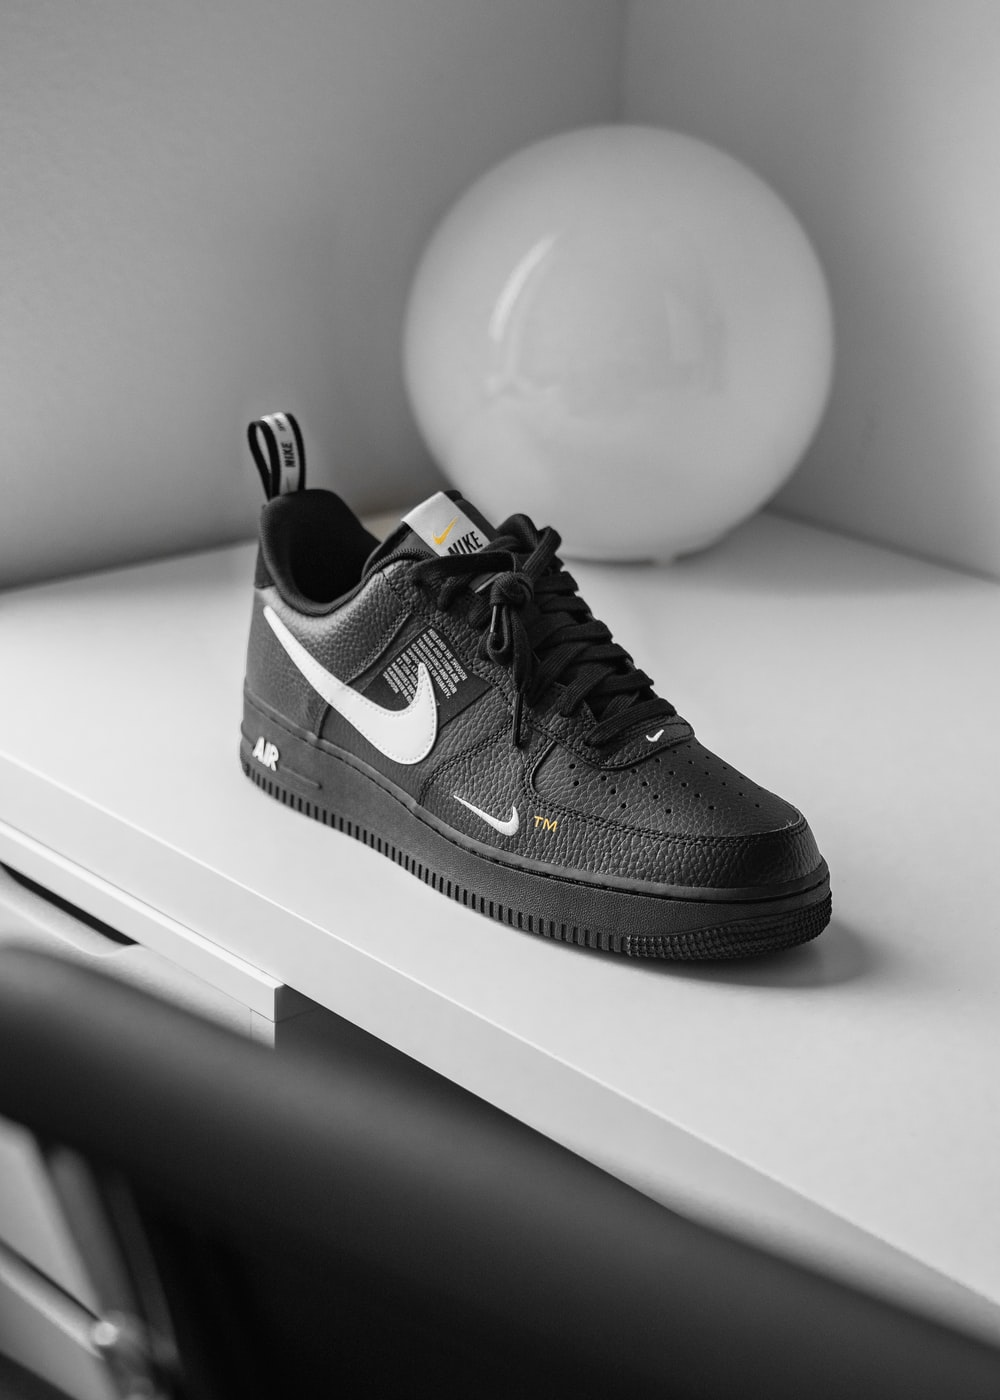 unpaired OFF WHITE X Nike Air Force 1 low-top sneaker